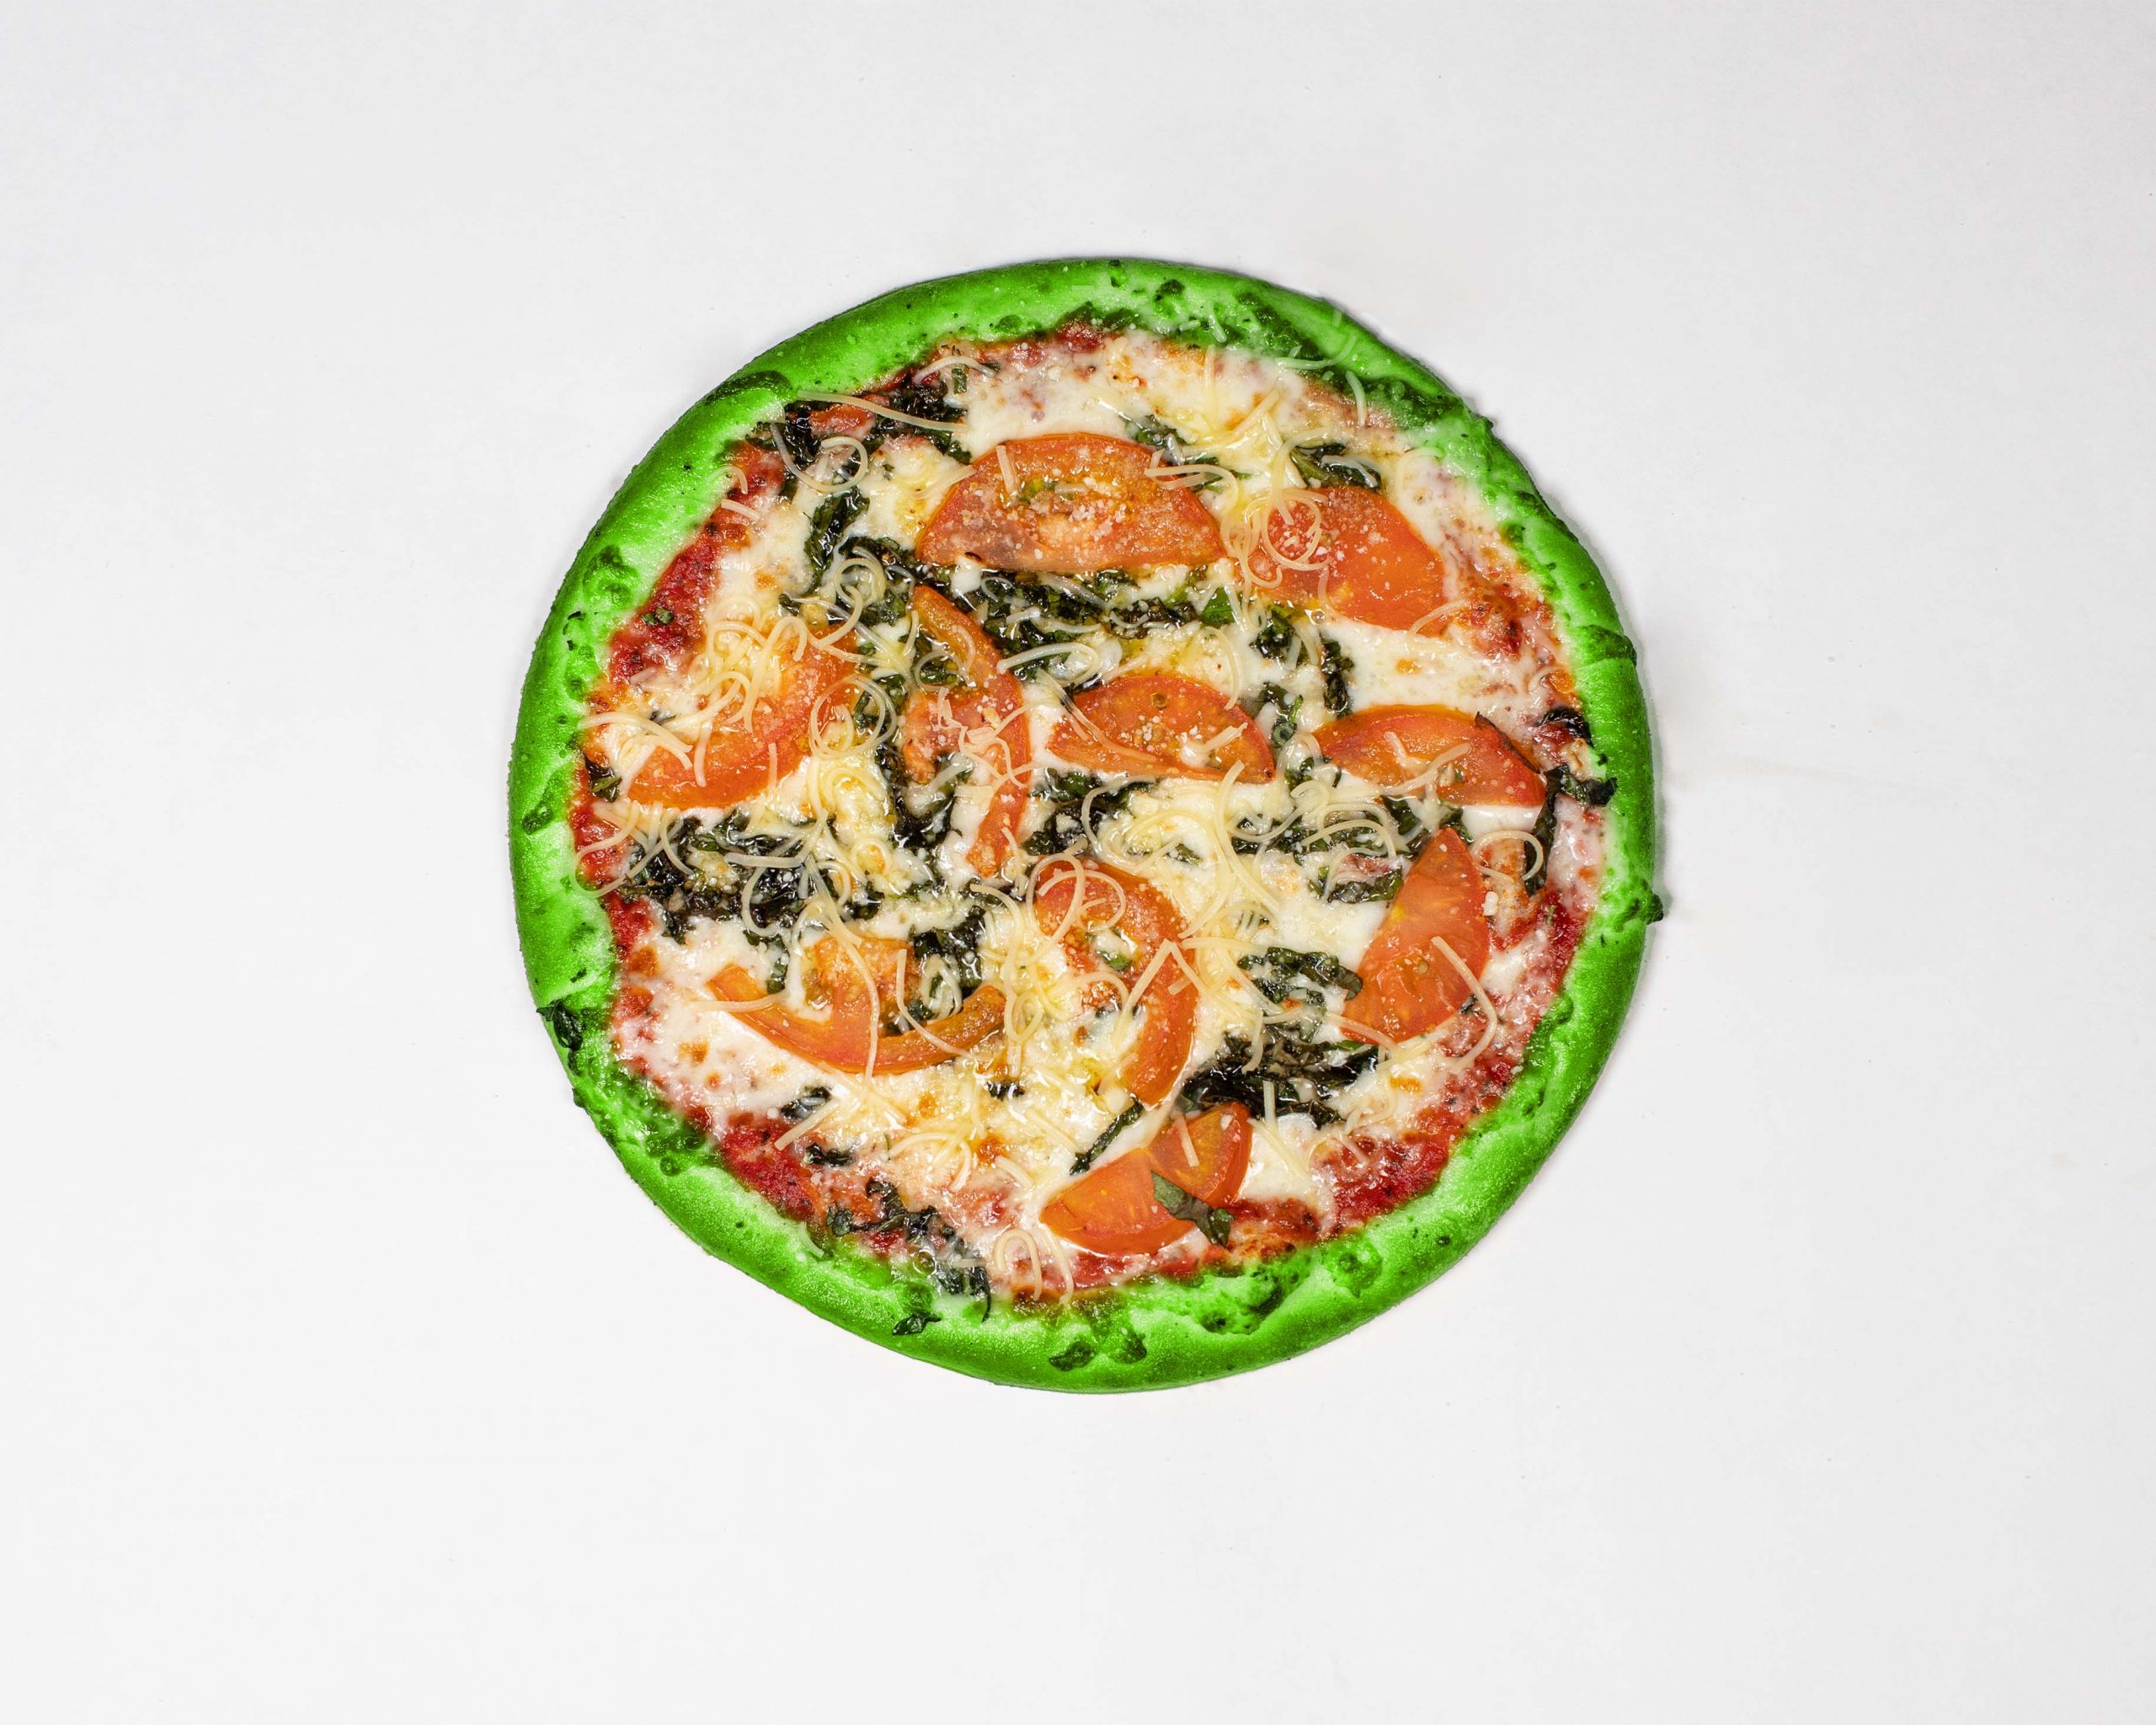 margherita pizza with green crust